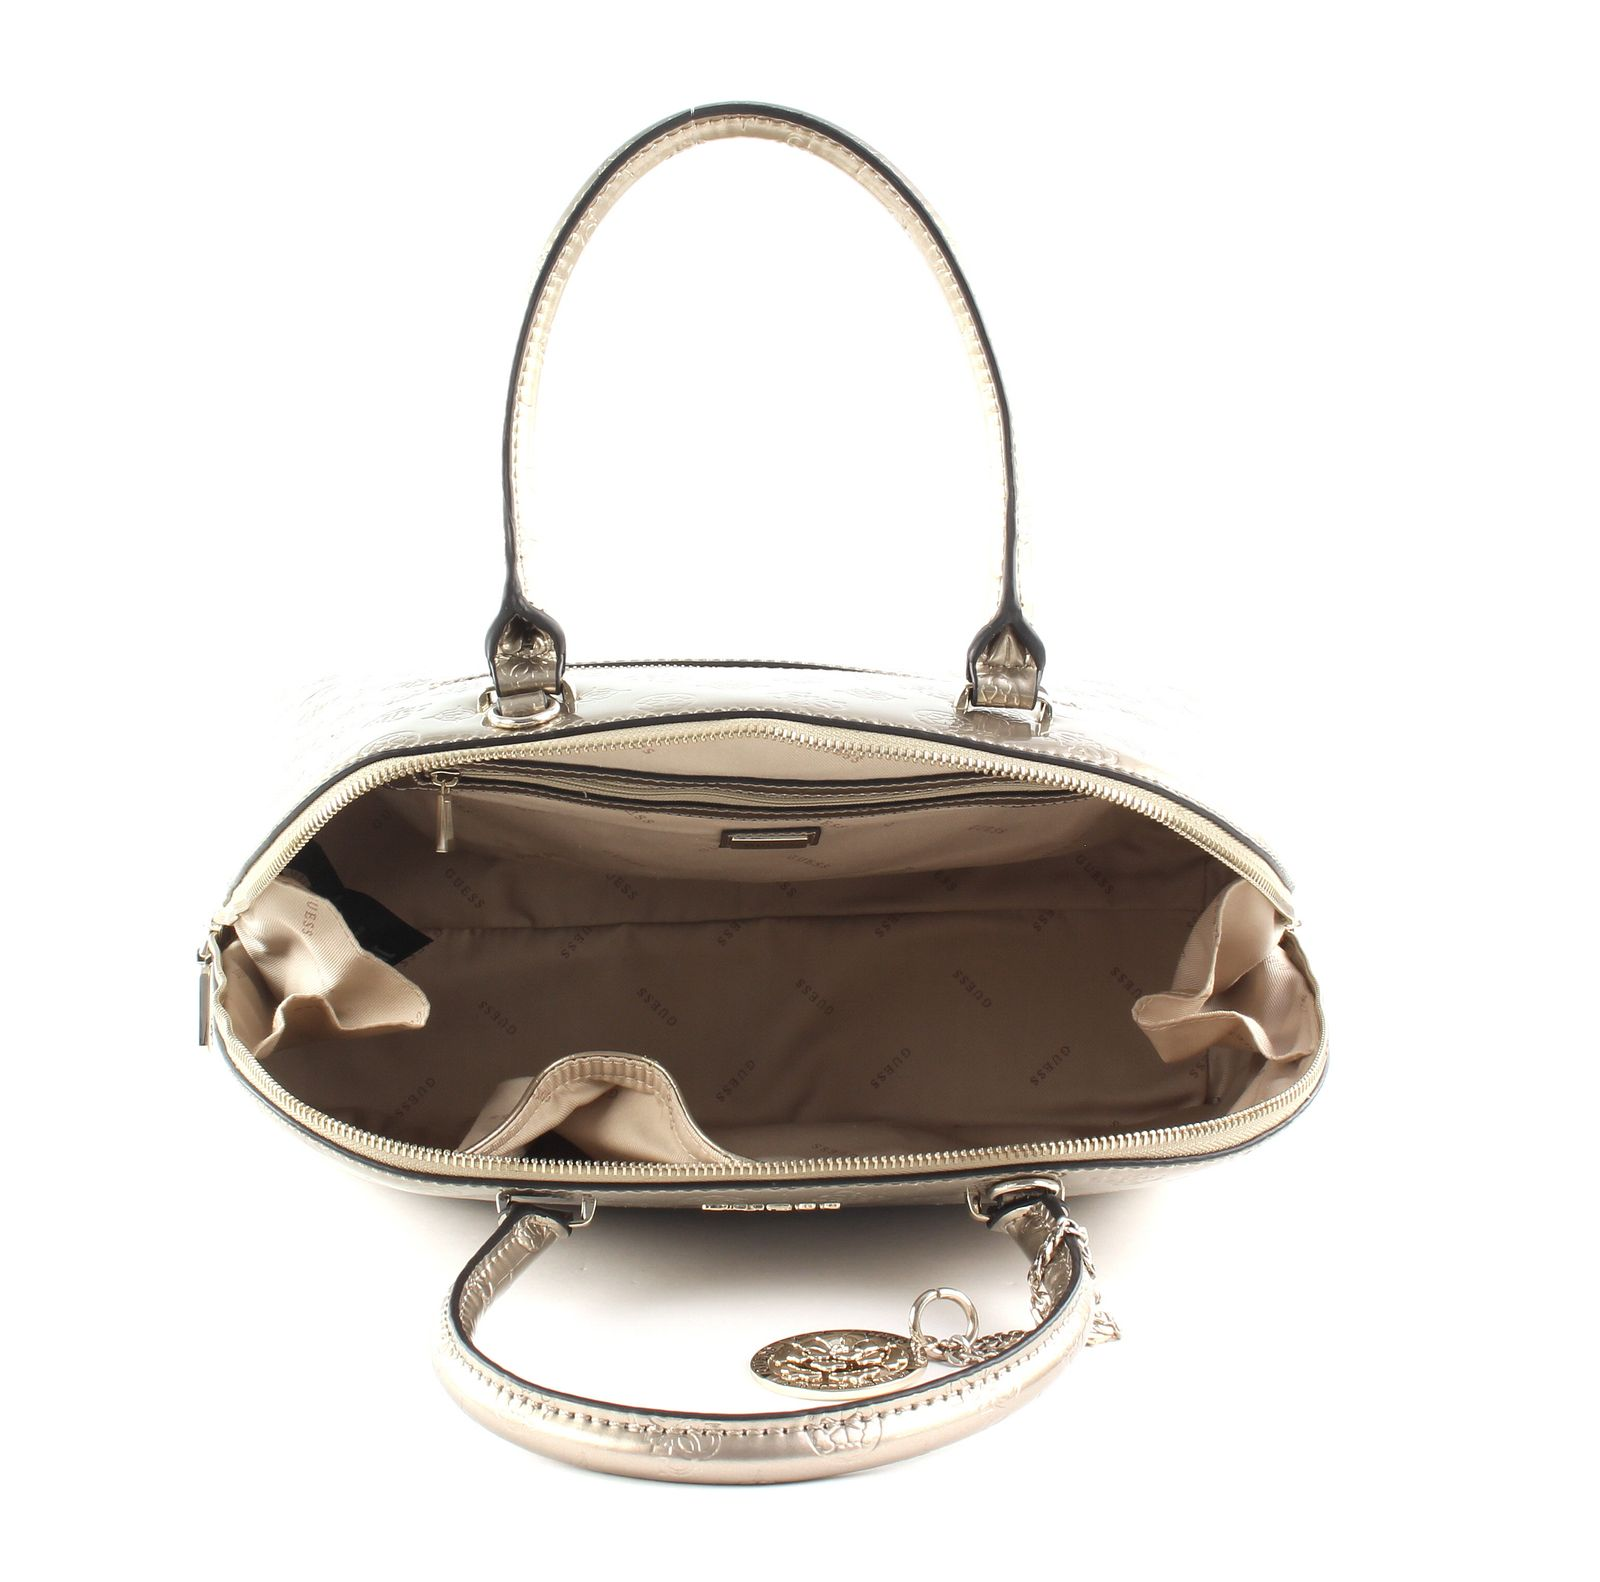 Details about GUESS Peony Shine Large Dome Satchel Champagne